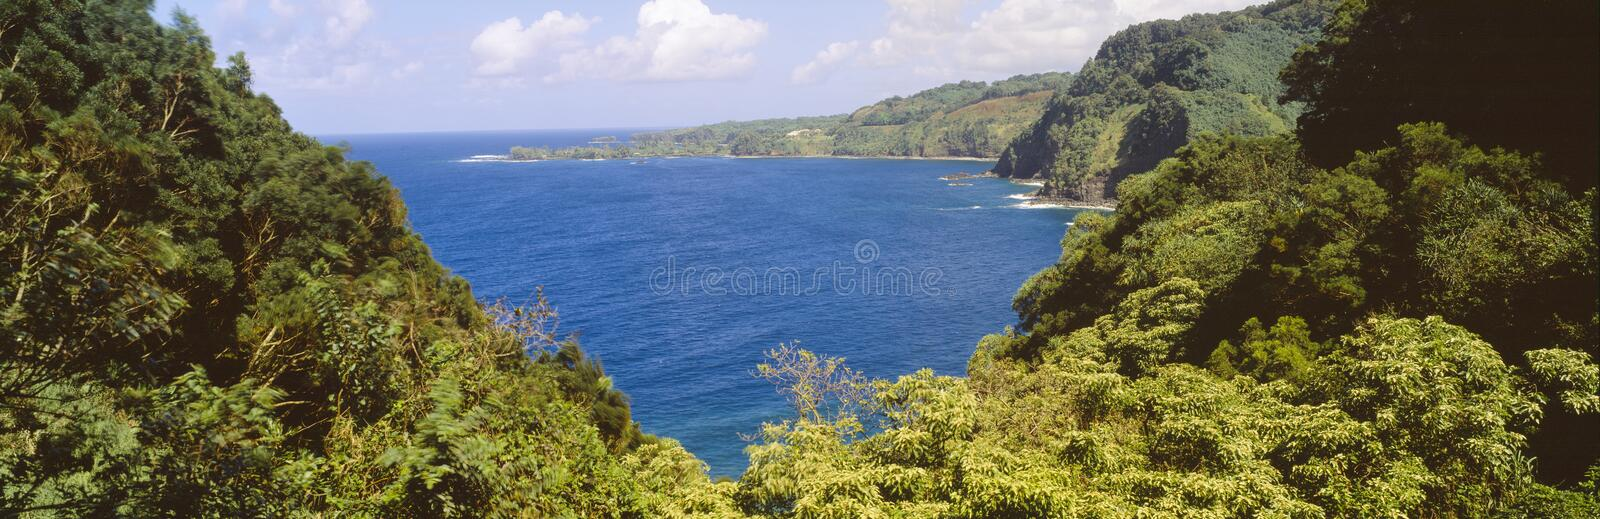 Ocean View From The Road Royalty Free Stock Image